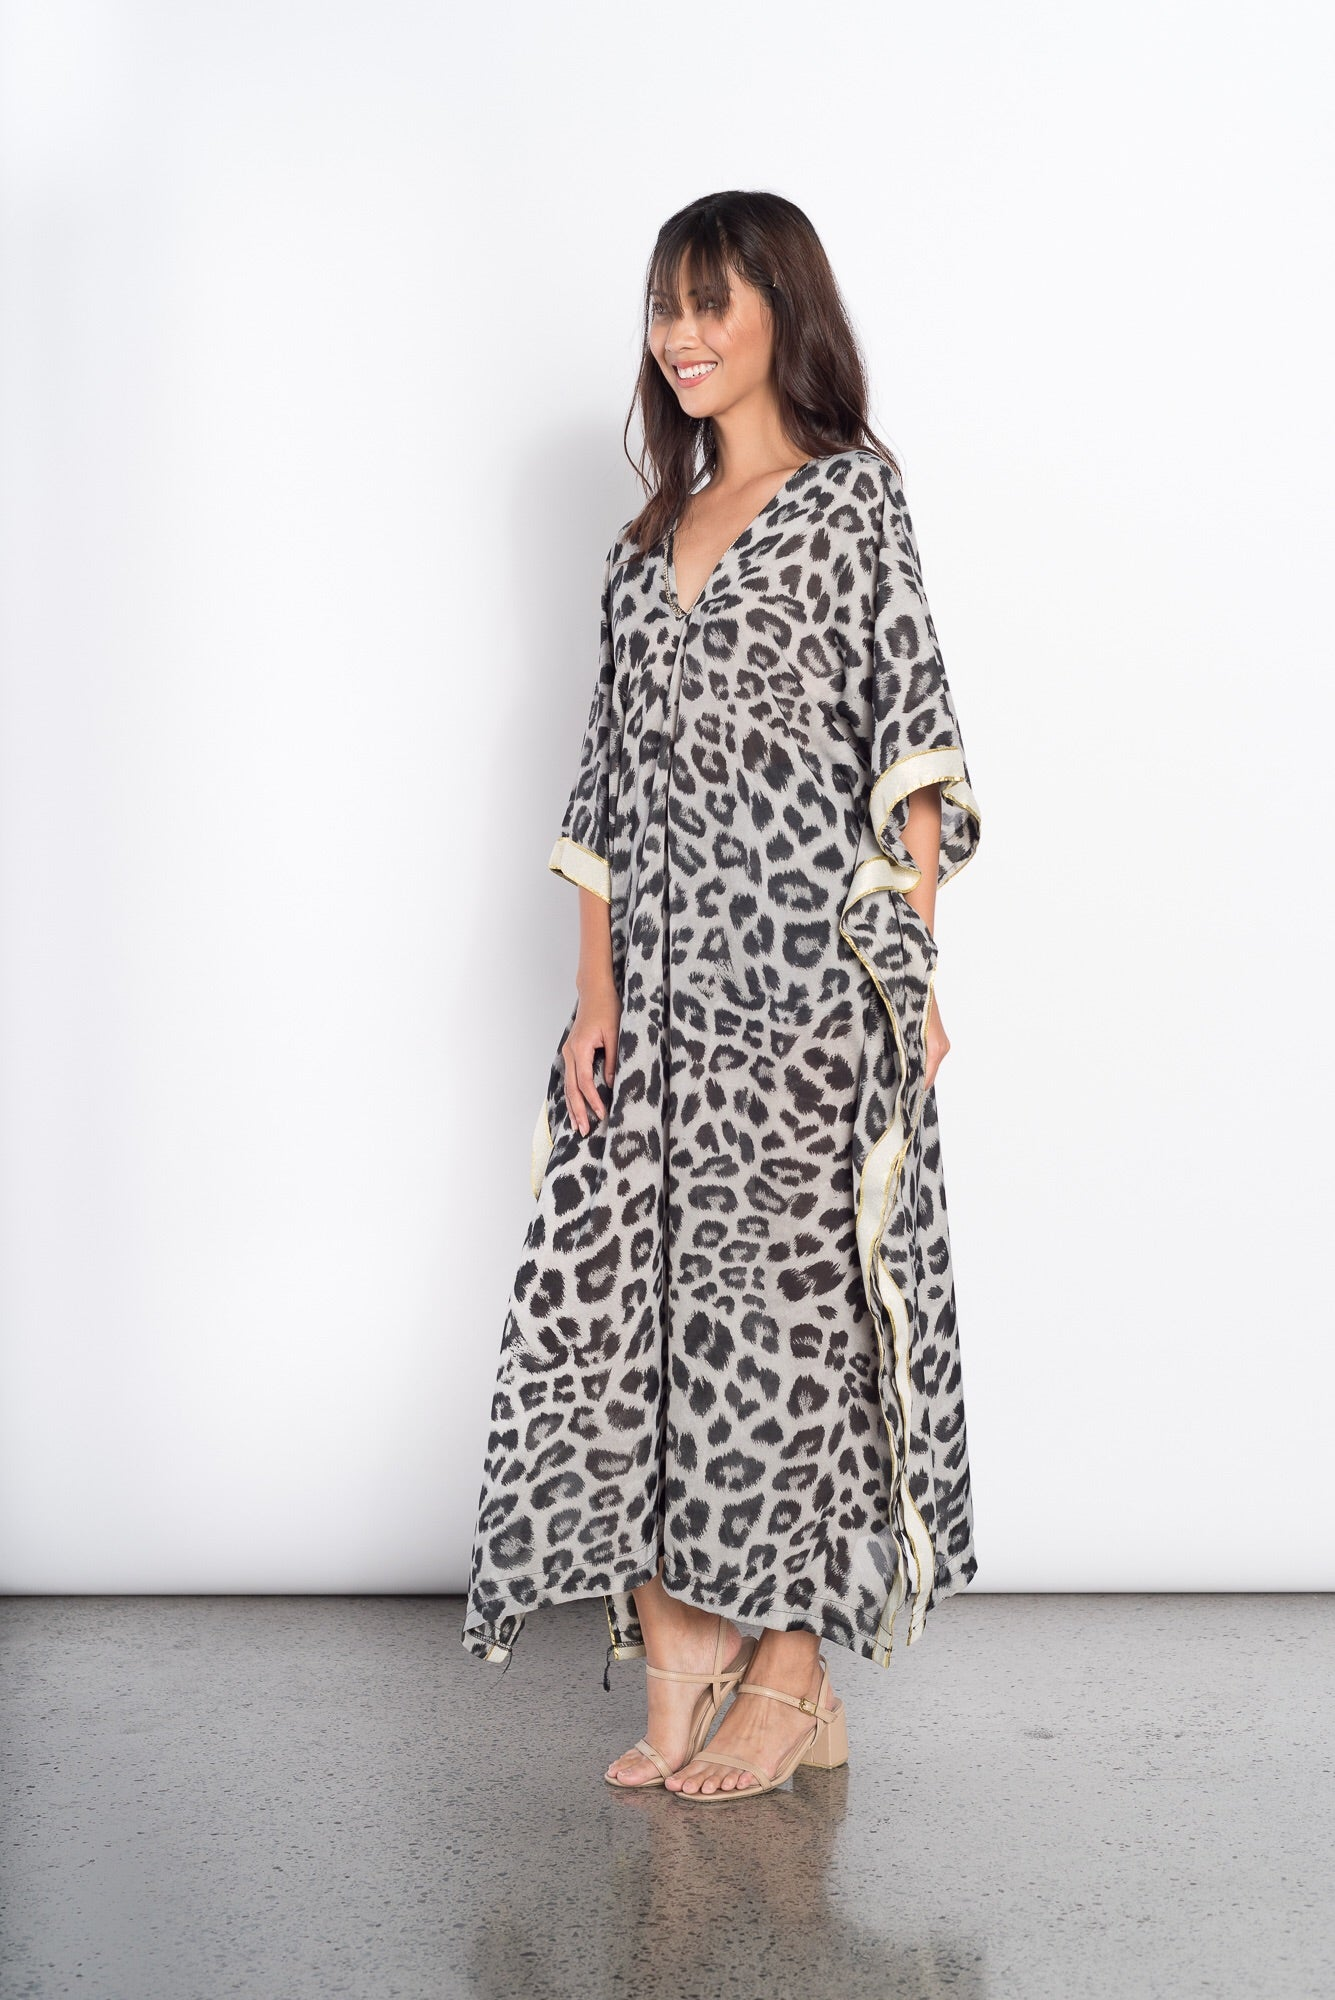 Glenna Cover Up in Leopard Print